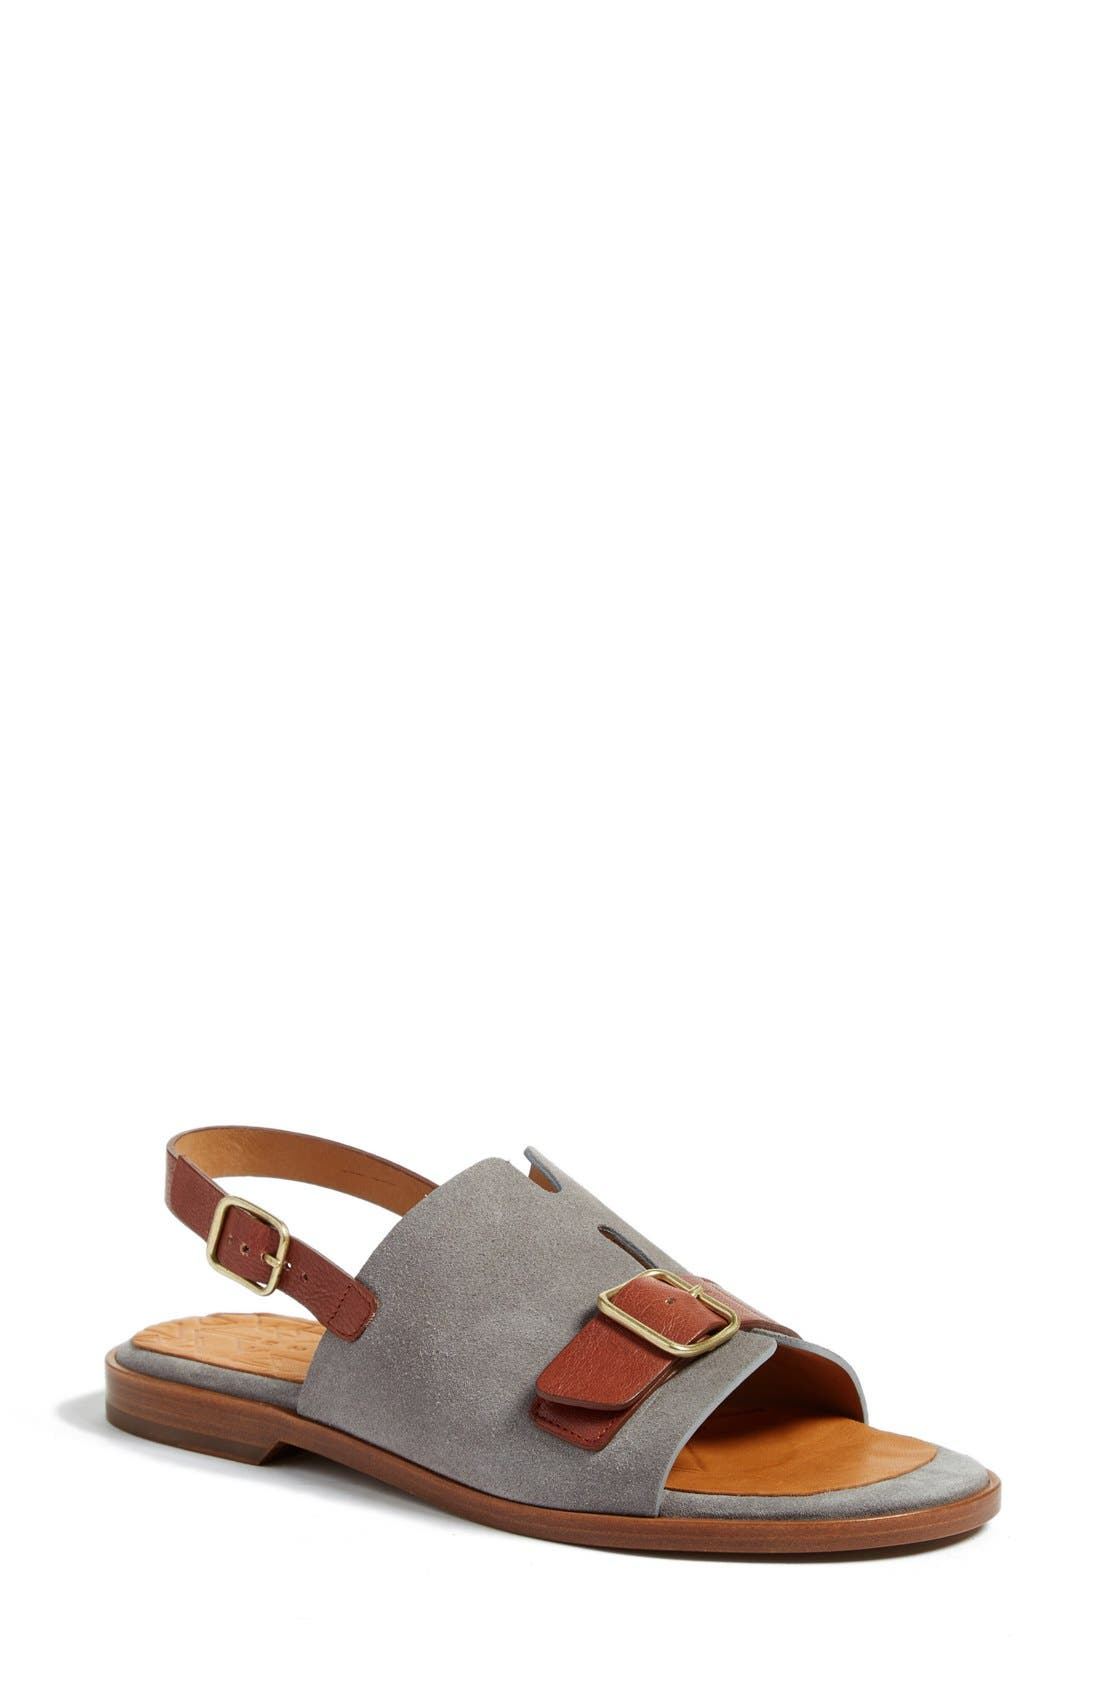 Main Image - Chie Mihara Querete Slingback Sandal (Women)